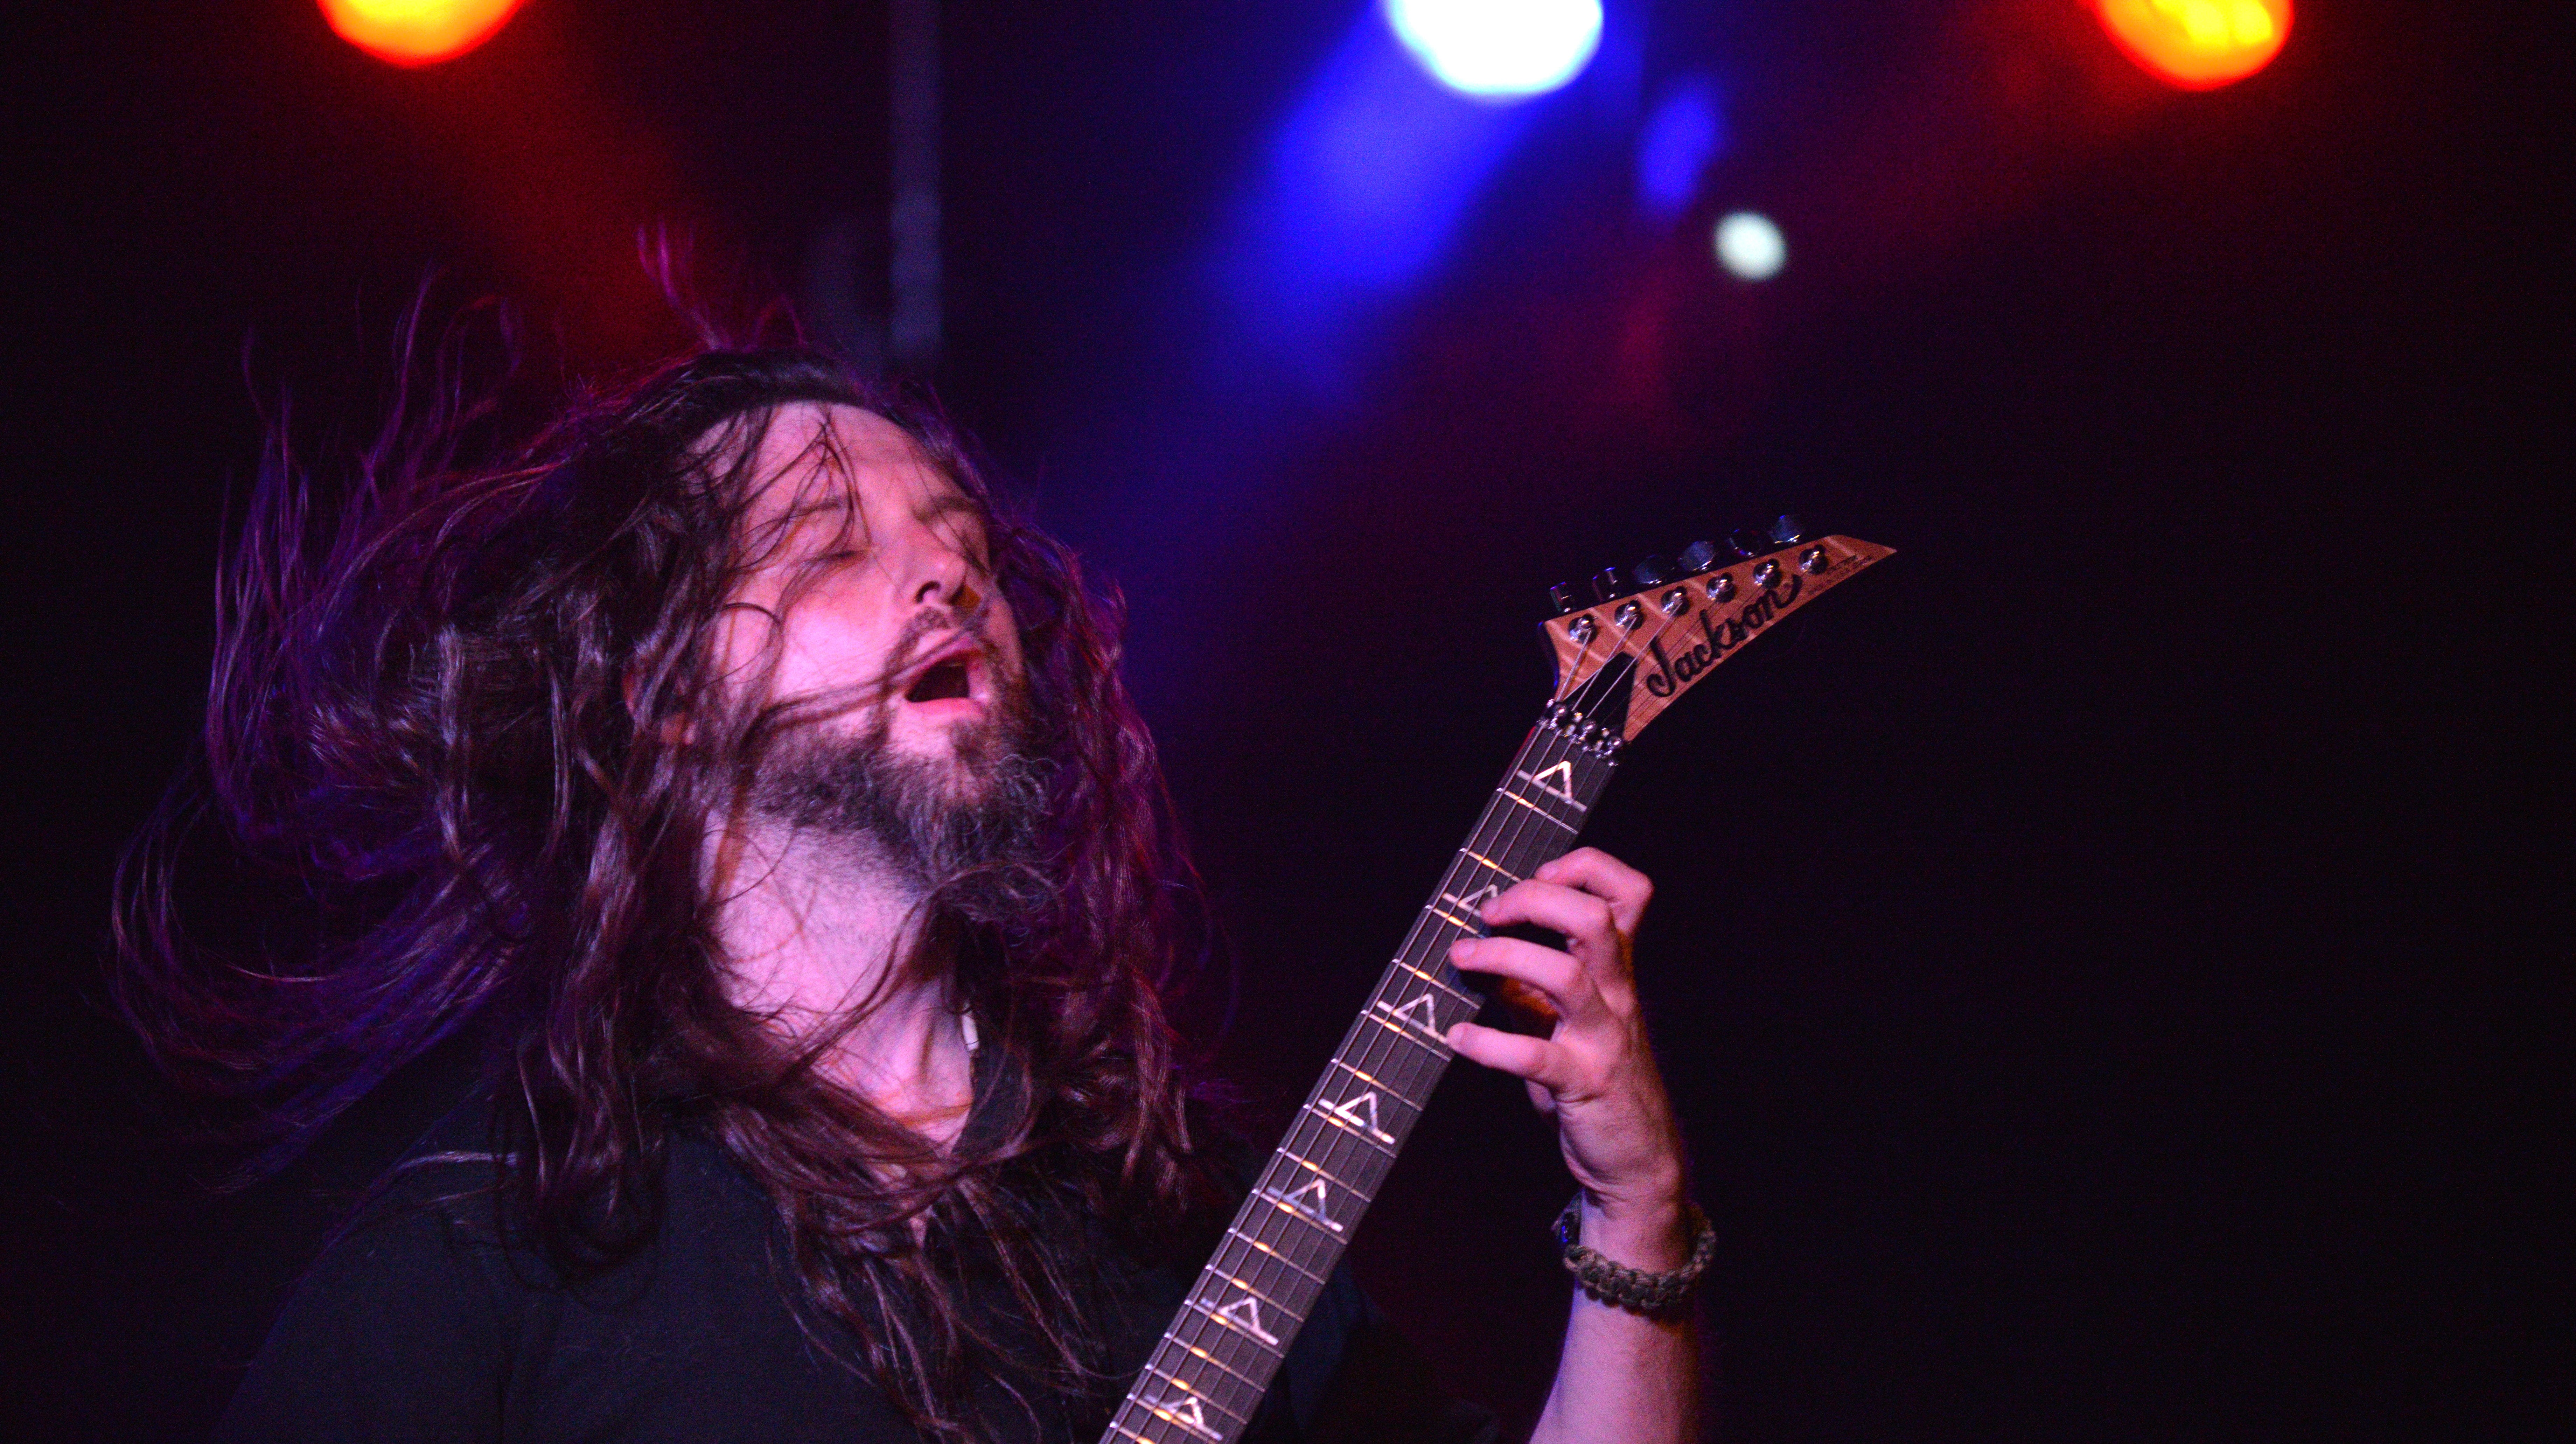 Oli Herbet, All That Remains guitarist, dead at 44